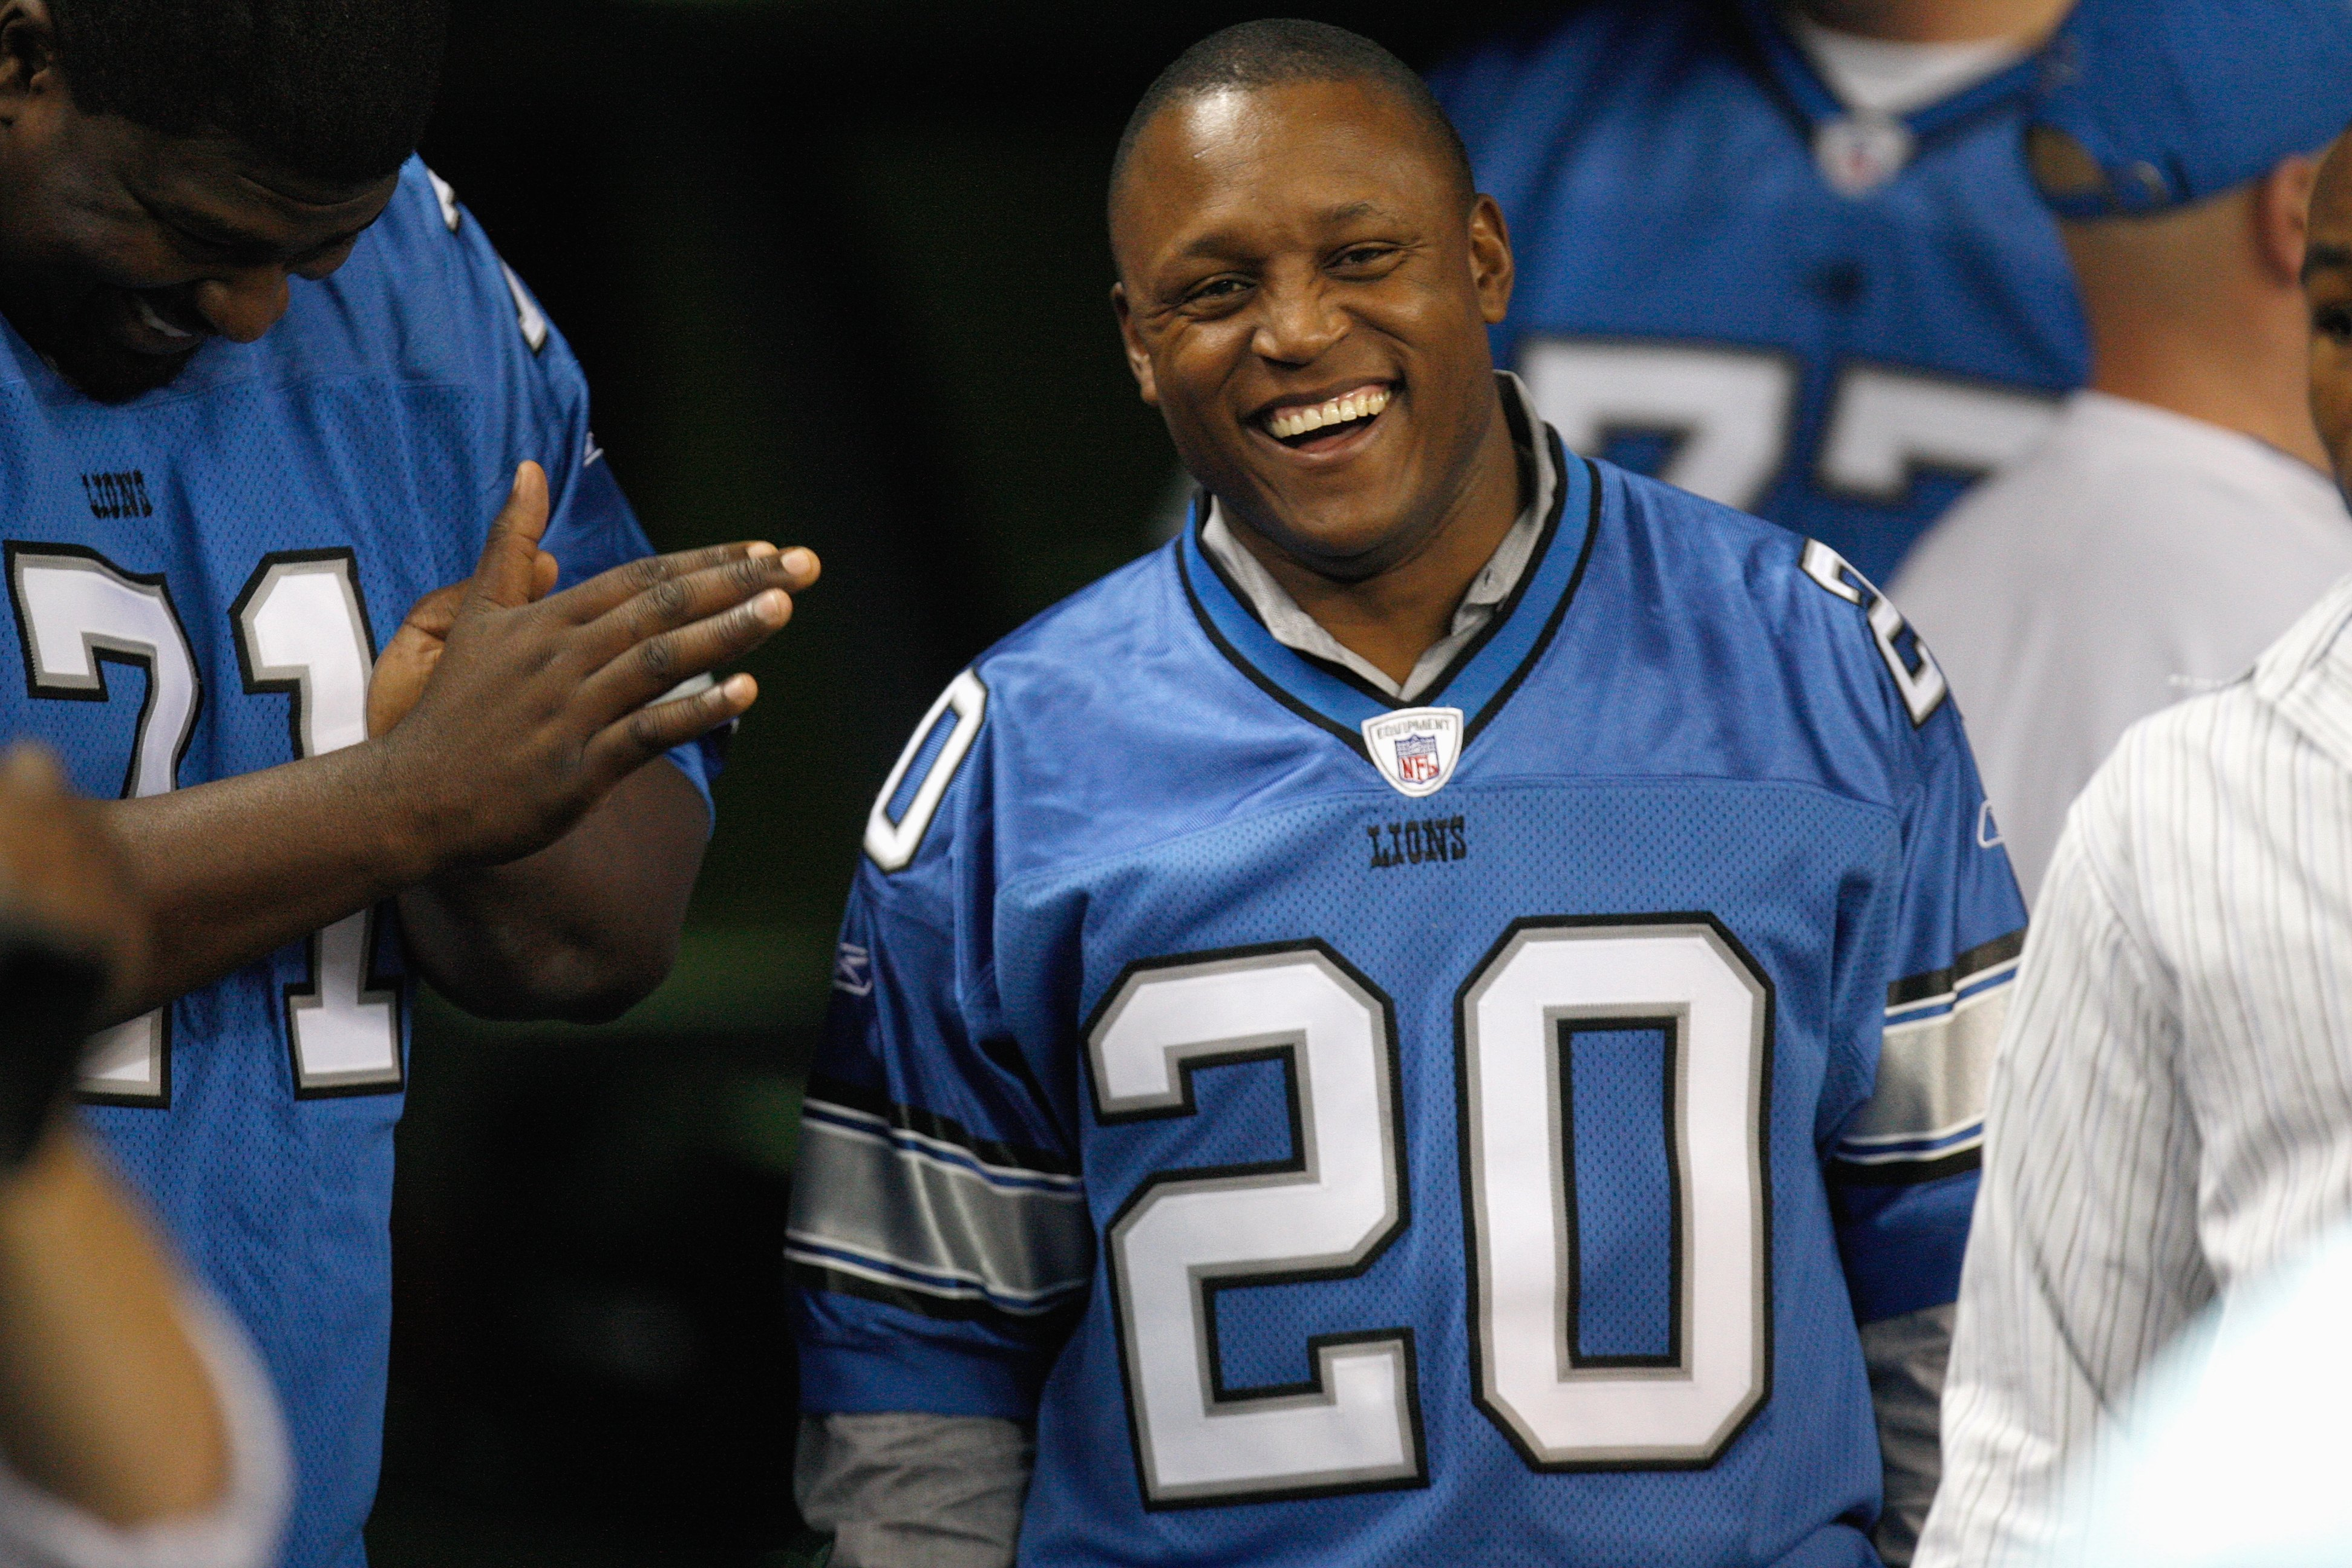 DETROIT - DECEMBER 23:  Barry Sanders smiles from the sideline during the game between the Kansas City Chiefs and the Detroit Lions on December 23, 2007 at Ford Field in Detroit, Michigan. (Photo byGregory Shamus/Getty Images)